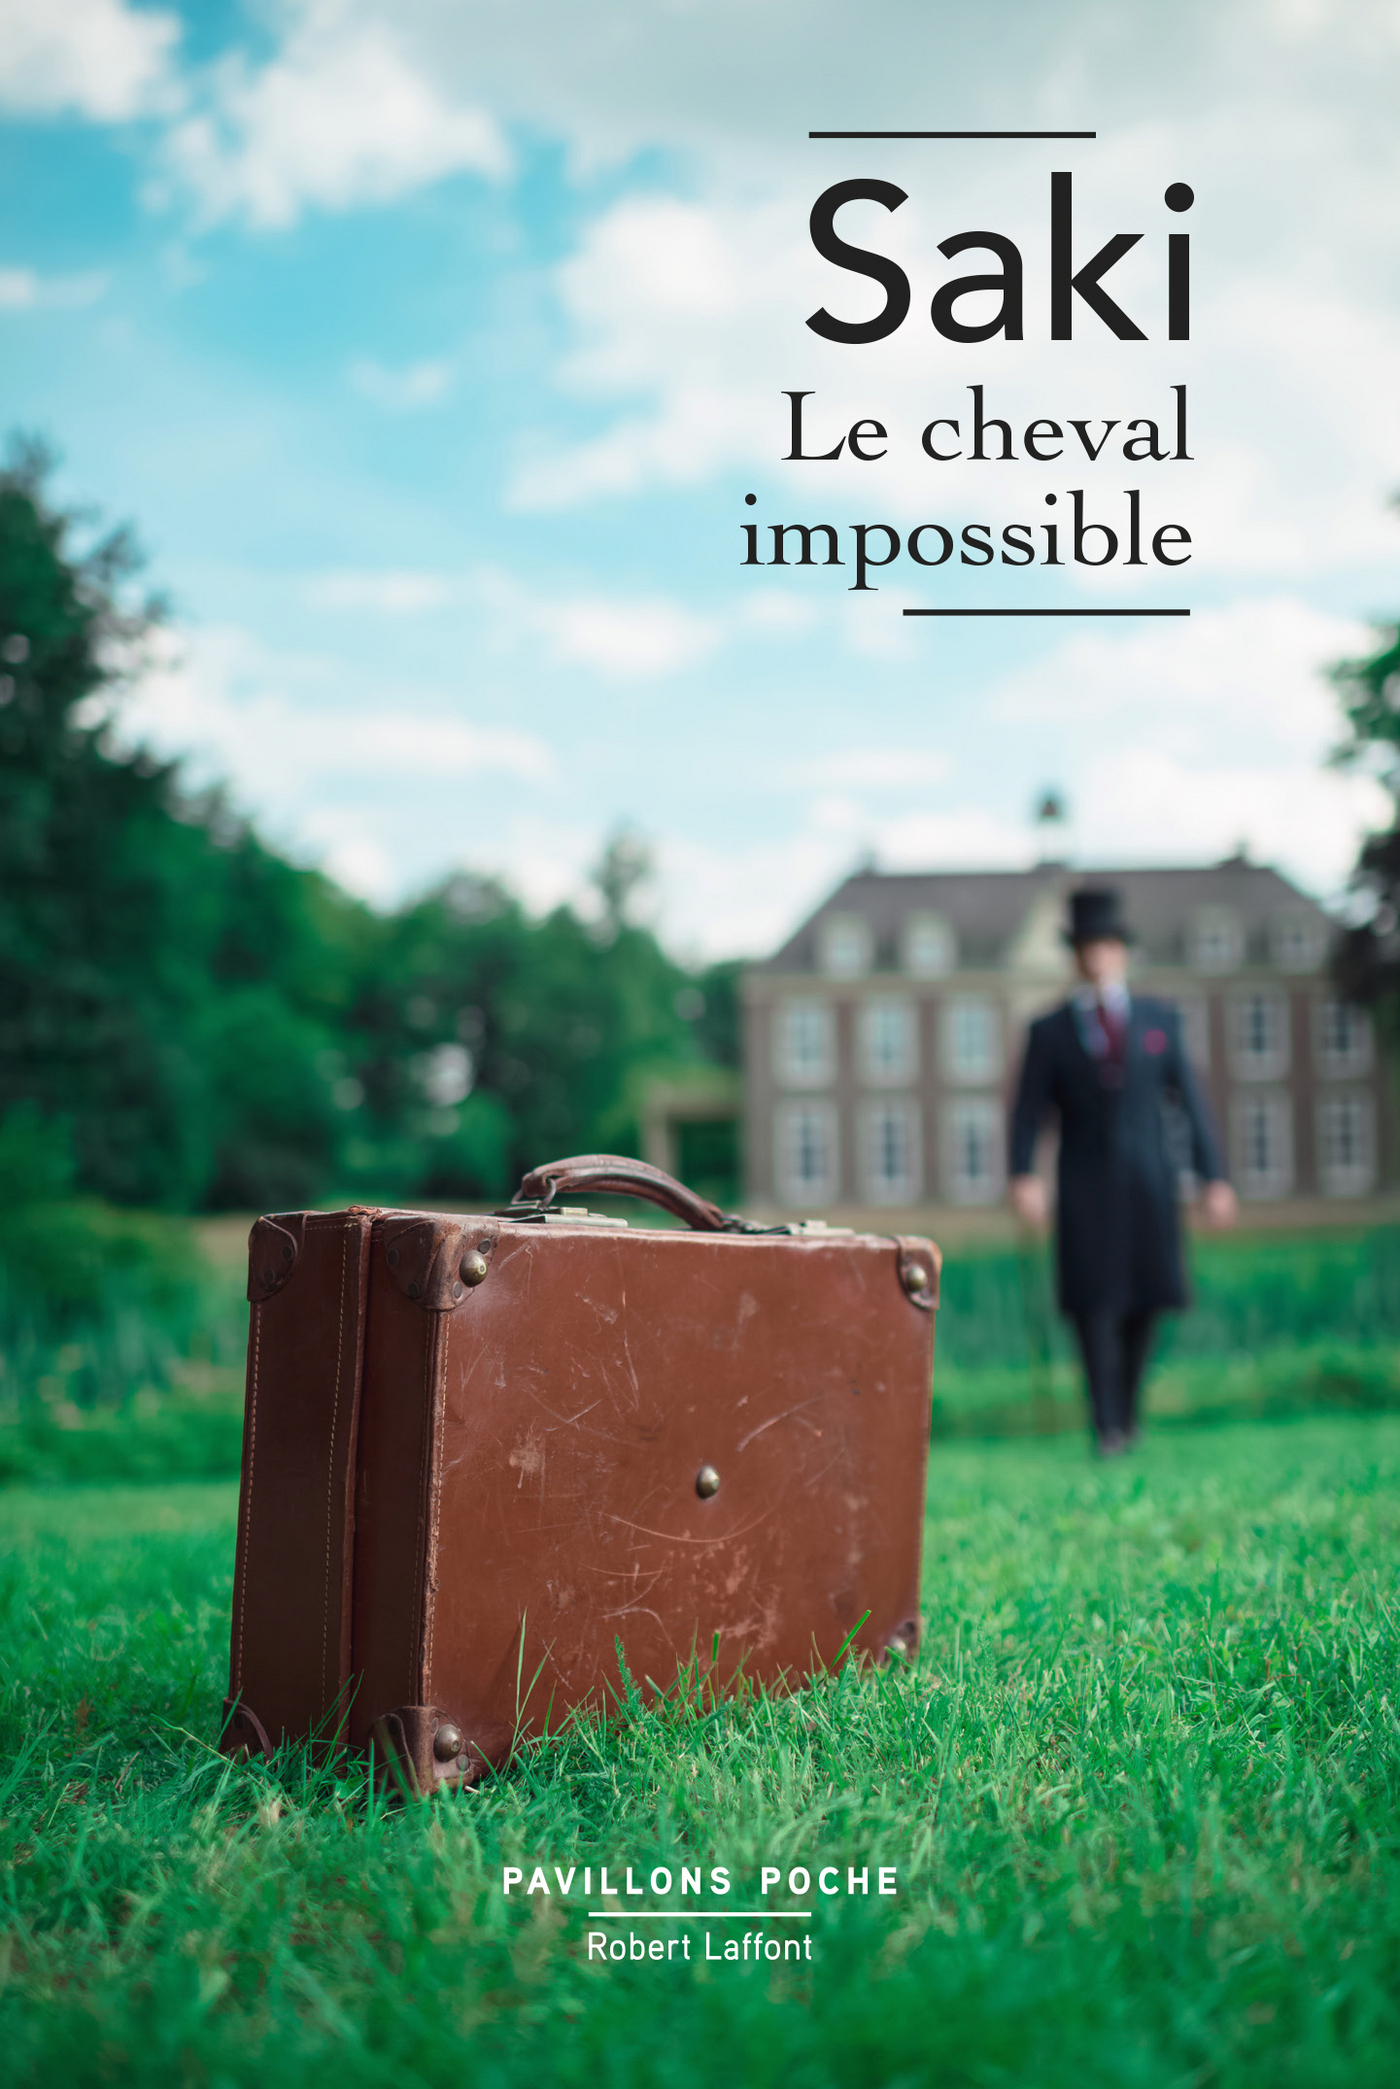 Le Cheval impossible